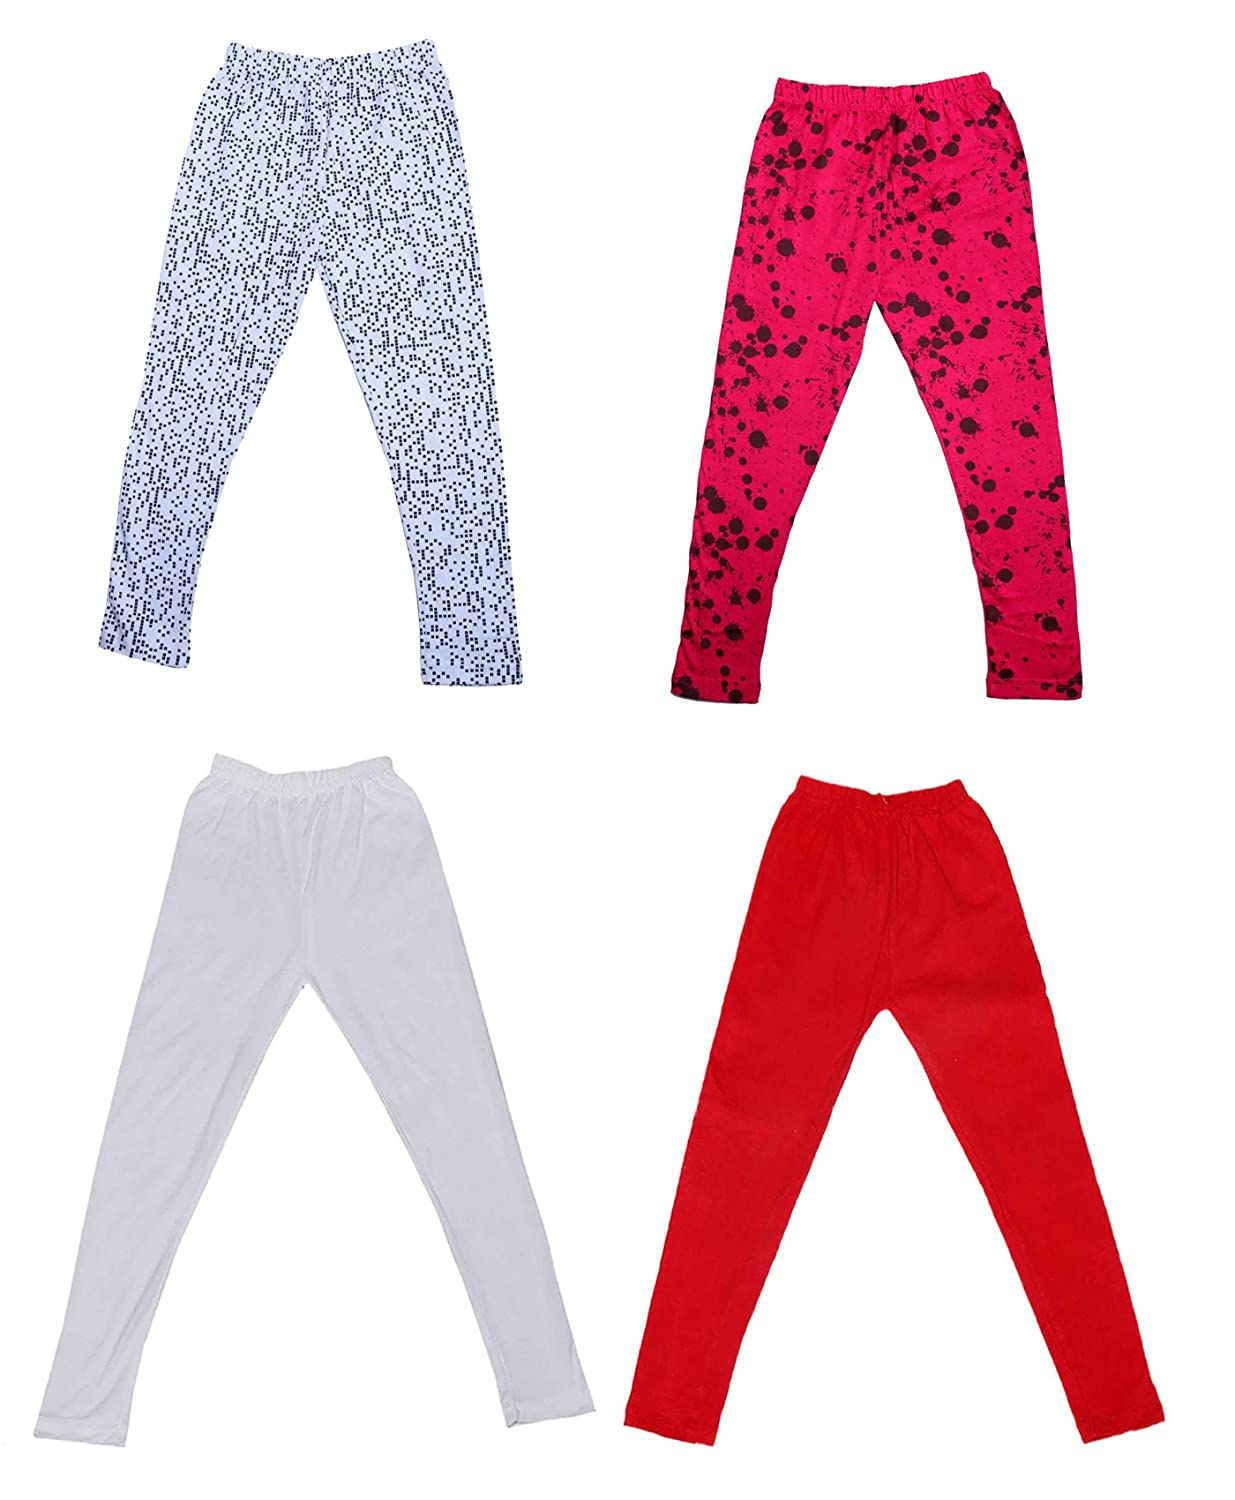 Pack Of 4 and 2 Cotton Printed Legging Pants Indistar Girls 2 Cotton Solid Legging Pants /_Multicolor/_Size-4-5 Years/_71403042021-IW-P4-26